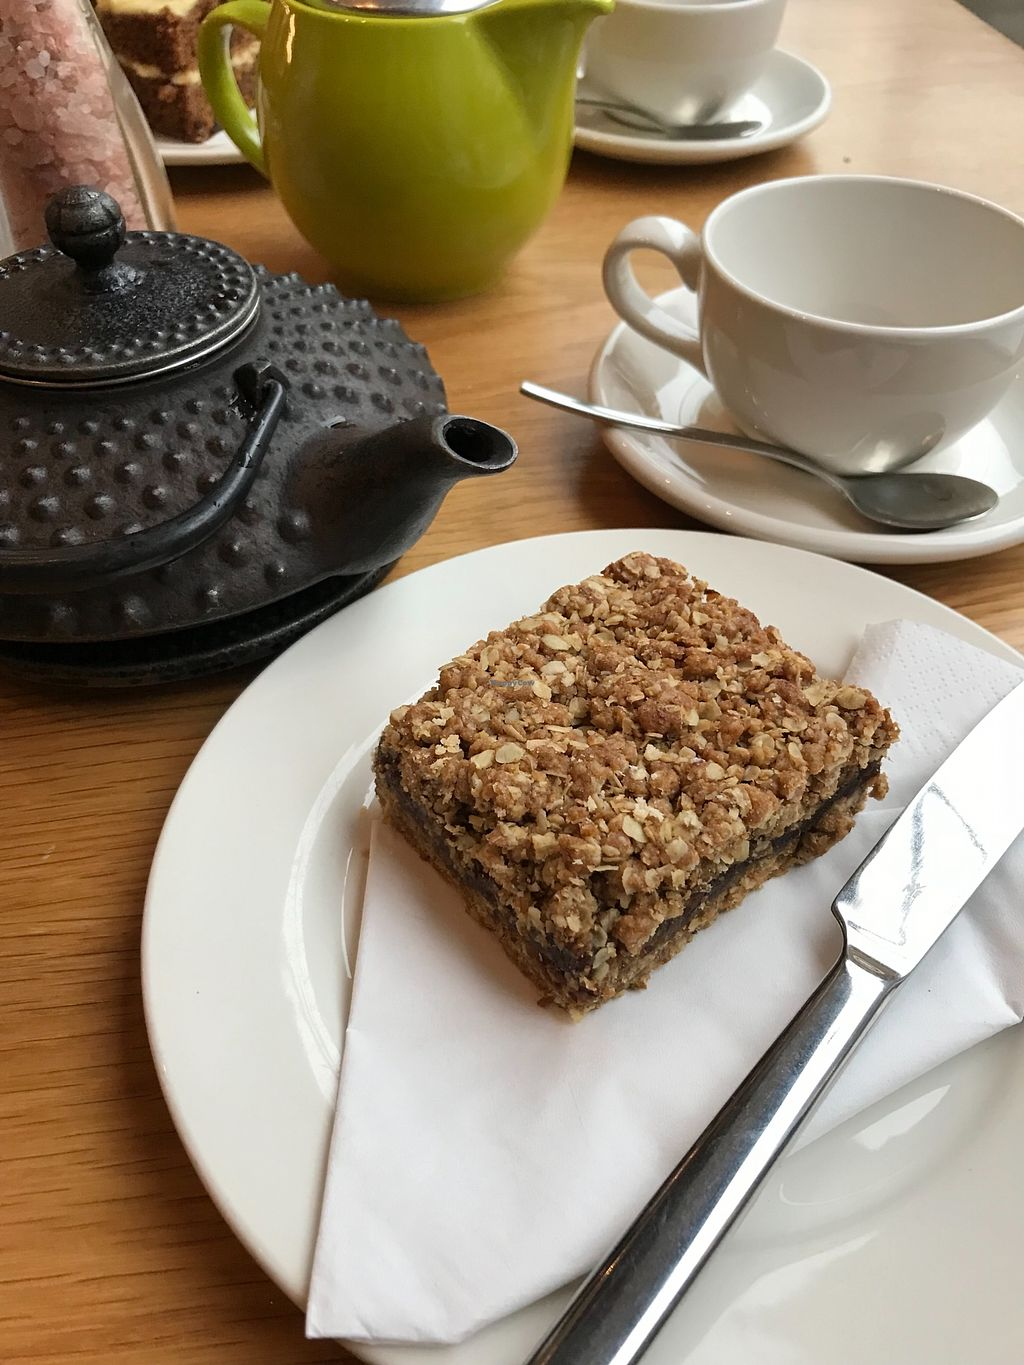 """Photo of Loudons Cafe and Bakery  by <a href=""""/members/profile/AshleighC"""">AshleighC</a> <br/>Loudons vegan date slice.  I am a big date slice fan and this is the best I've ever had.  I have it every time <br/> February 5, 2018  - <a href='/contact/abuse/image/105784/355402'>Report</a>"""